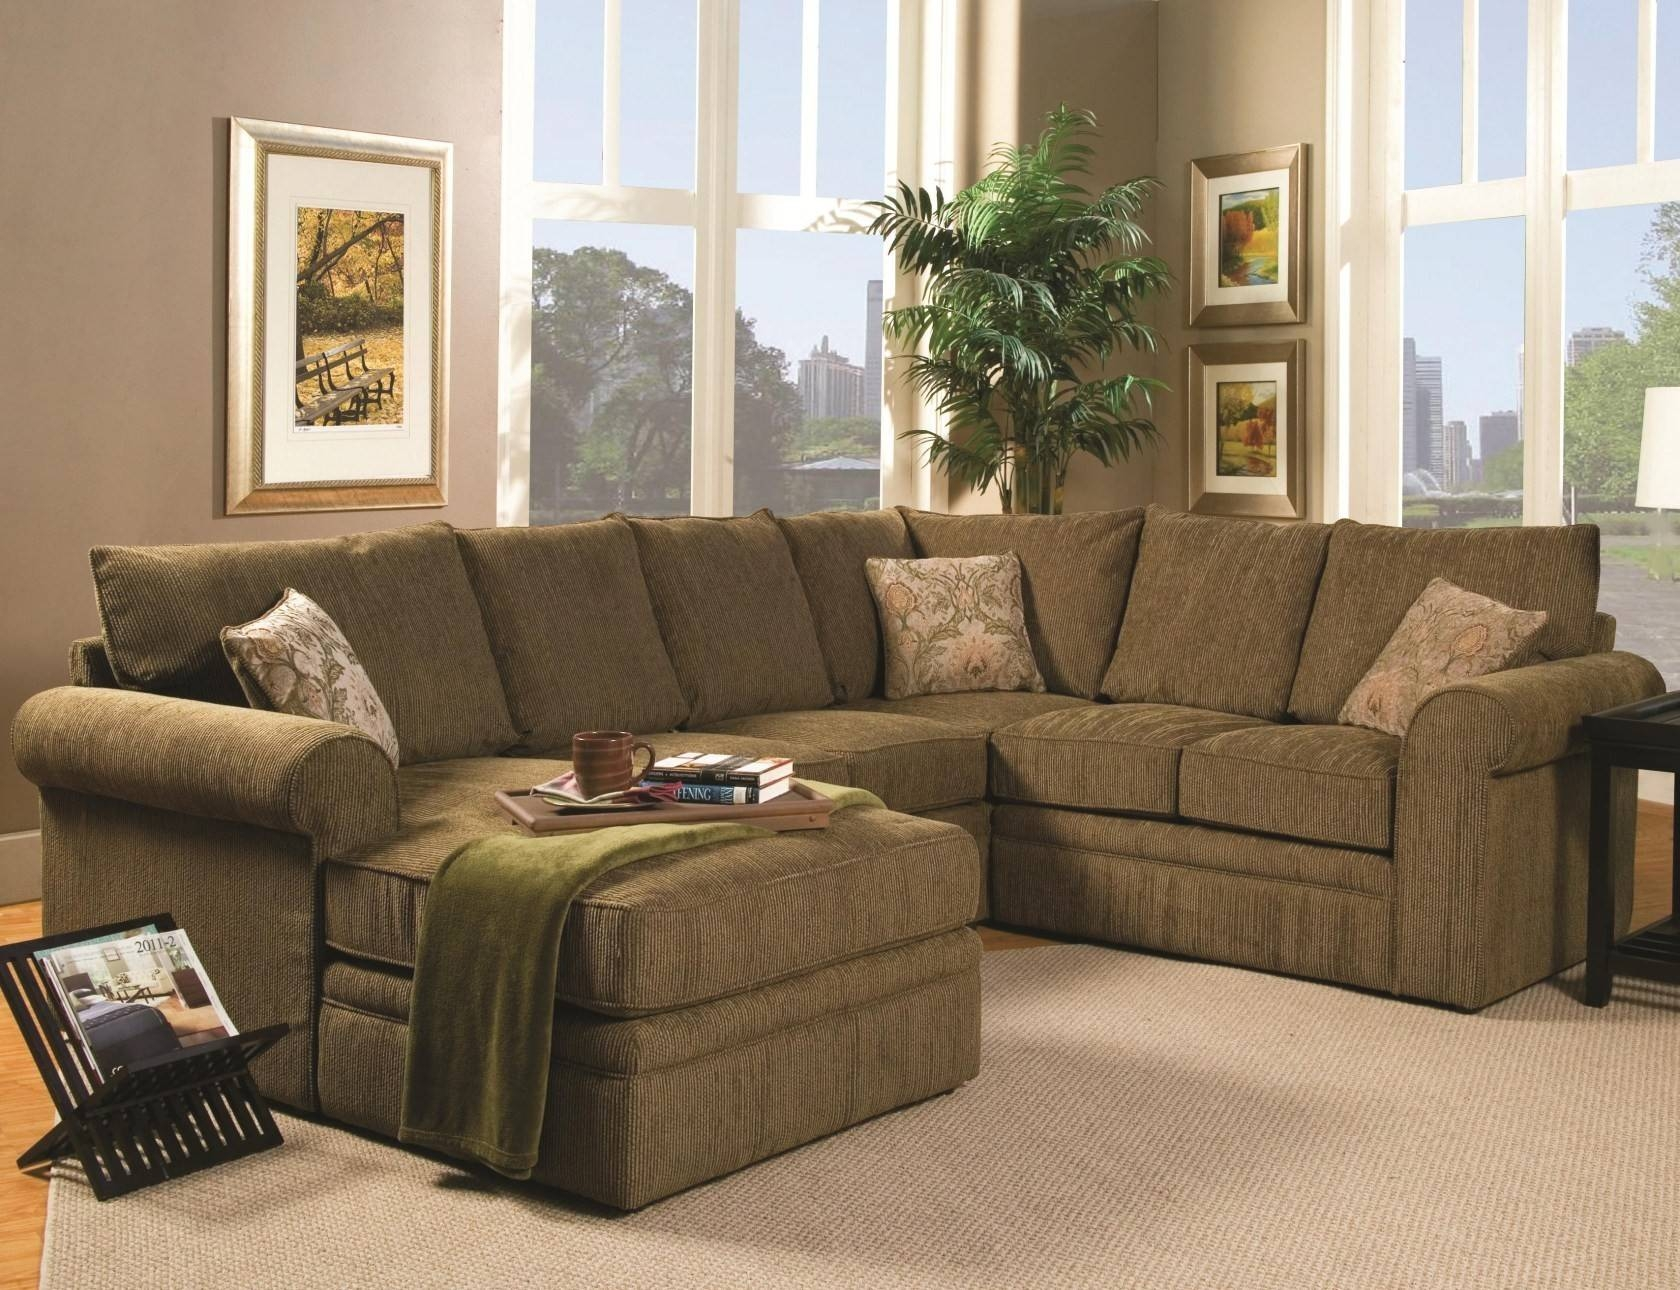 Sofa Covers For Sectional With Design Gallery 24449 | Kengire throughout Sectional Sofa Covers (Image 19 of 25)